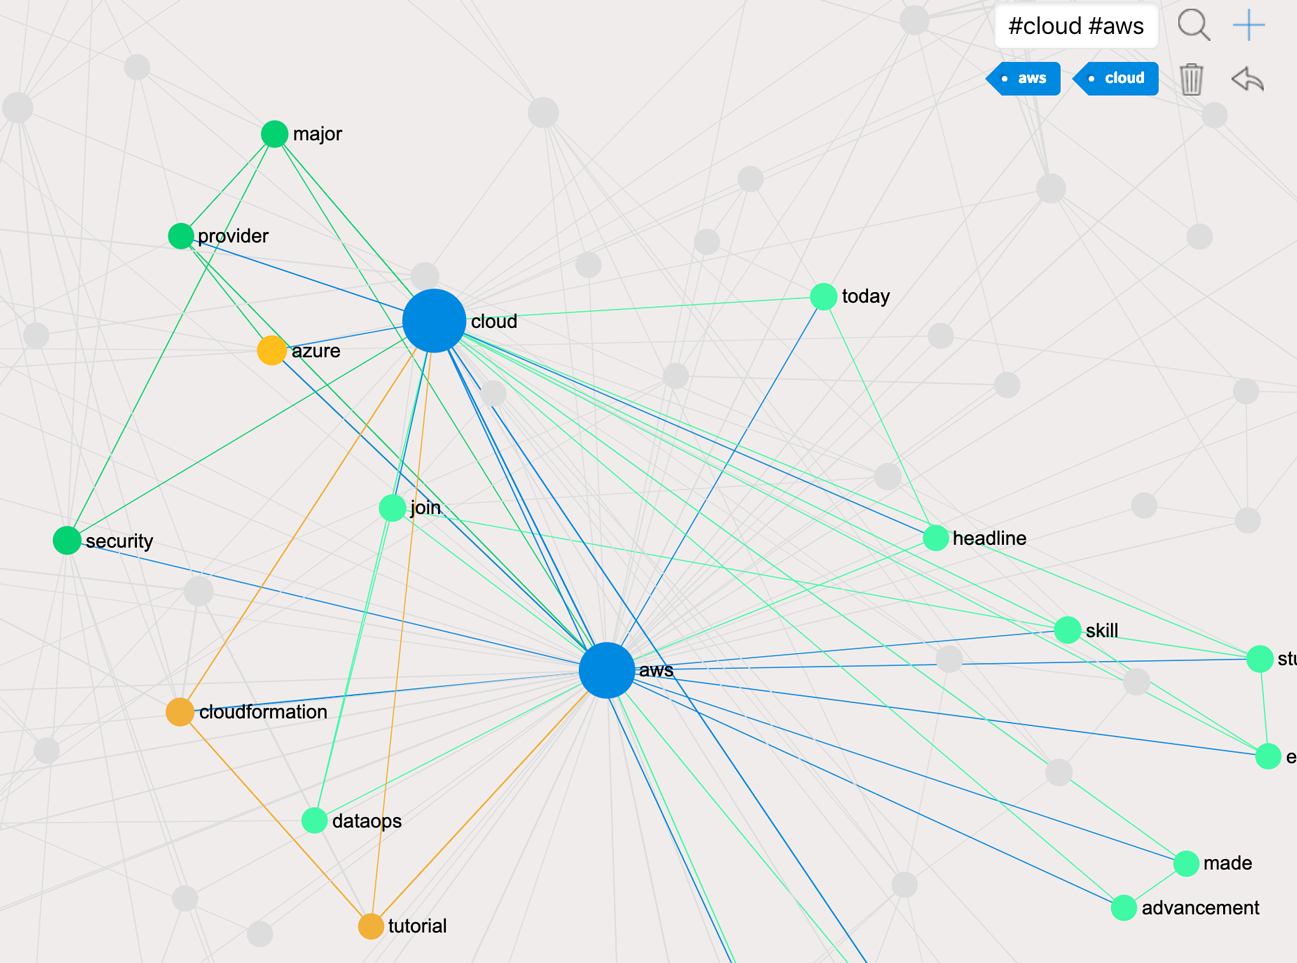 Highlighting the nodes on the network graph for better analysis